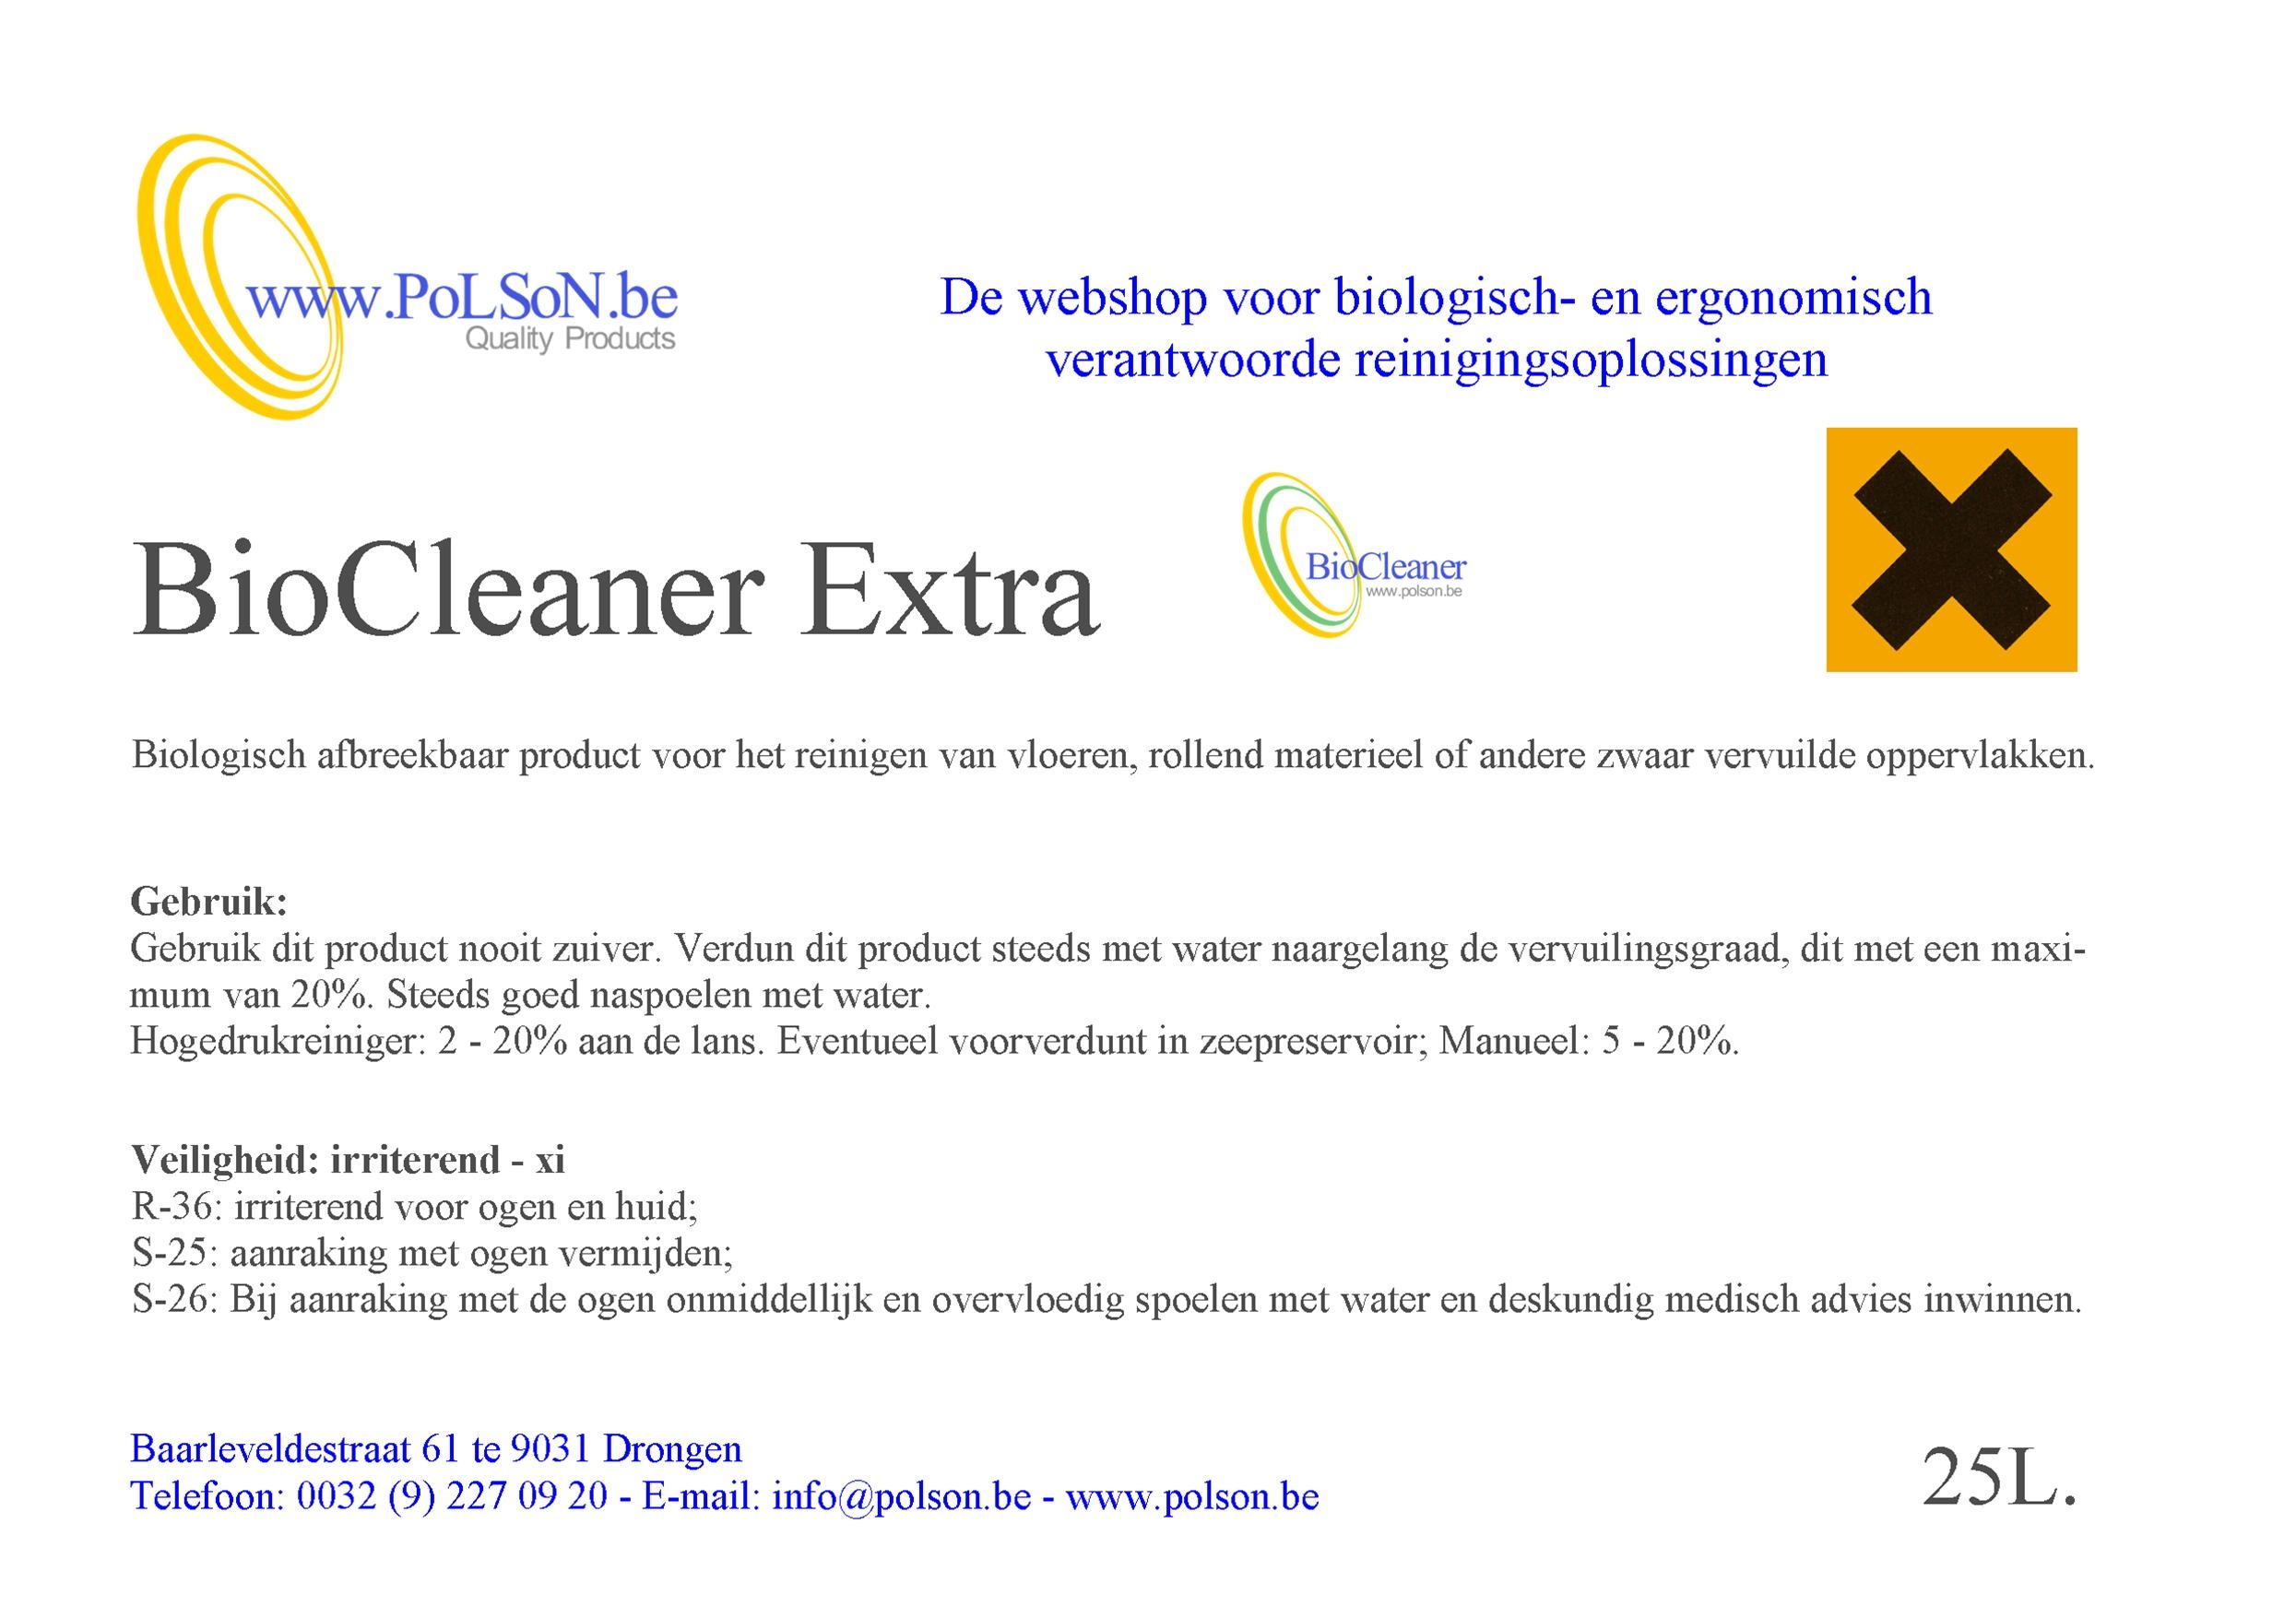 BIOCLEANER EXTRA 25L.